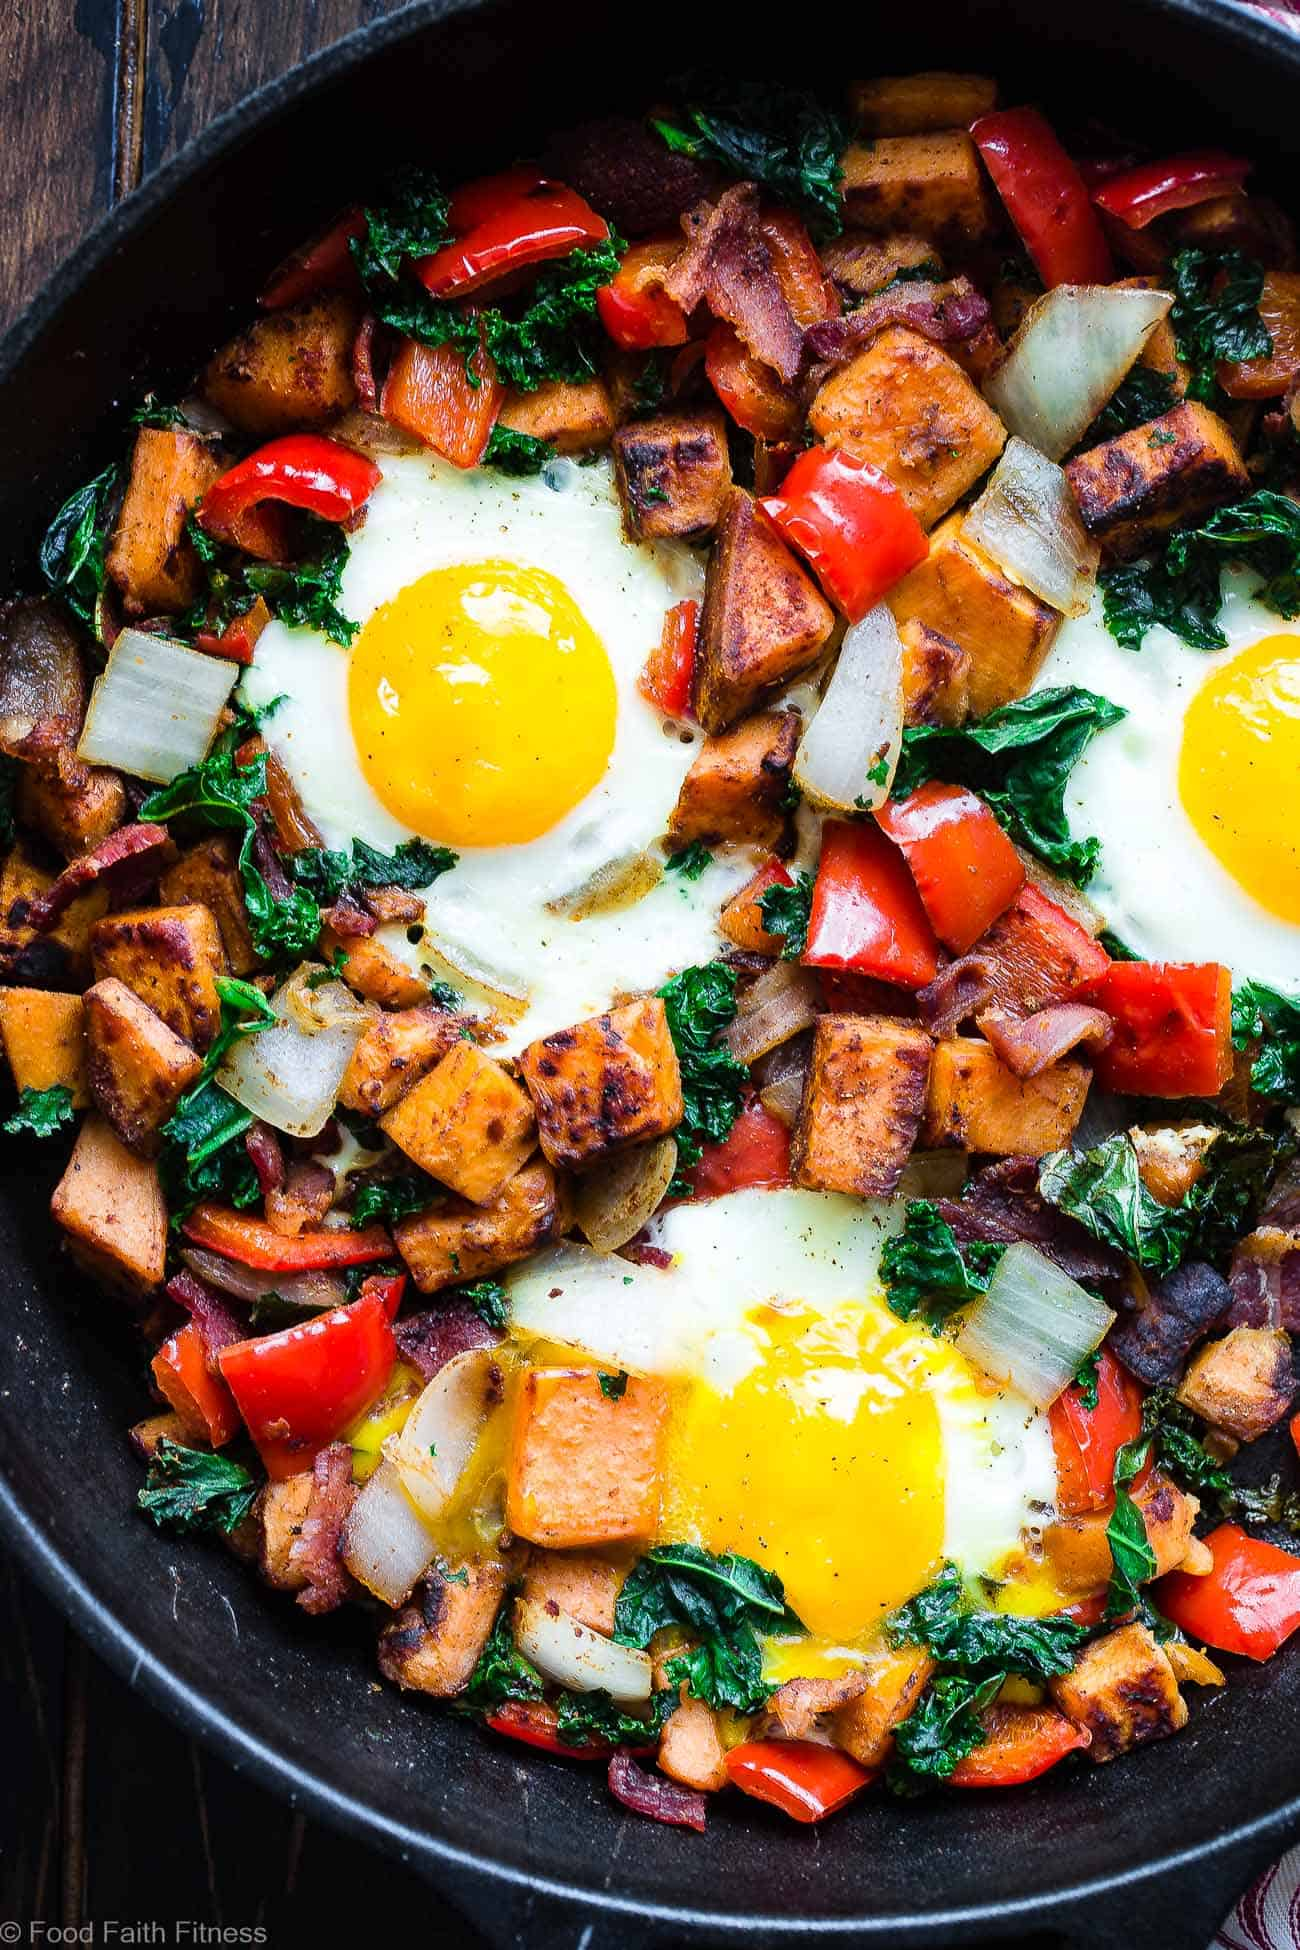 Whole30 Sweet Potato Bacon Breakfast Hash -This 30 minute, paleo friendly sweet potato hash with eggs makes a quick, delicious and healthy breakfast that is gluten/grain/dairy/sugar free and only 310 calories!| #Foodfaithfitness.com | #Paleo #Glutenfree #Whole30 #Healthy #Breakfast